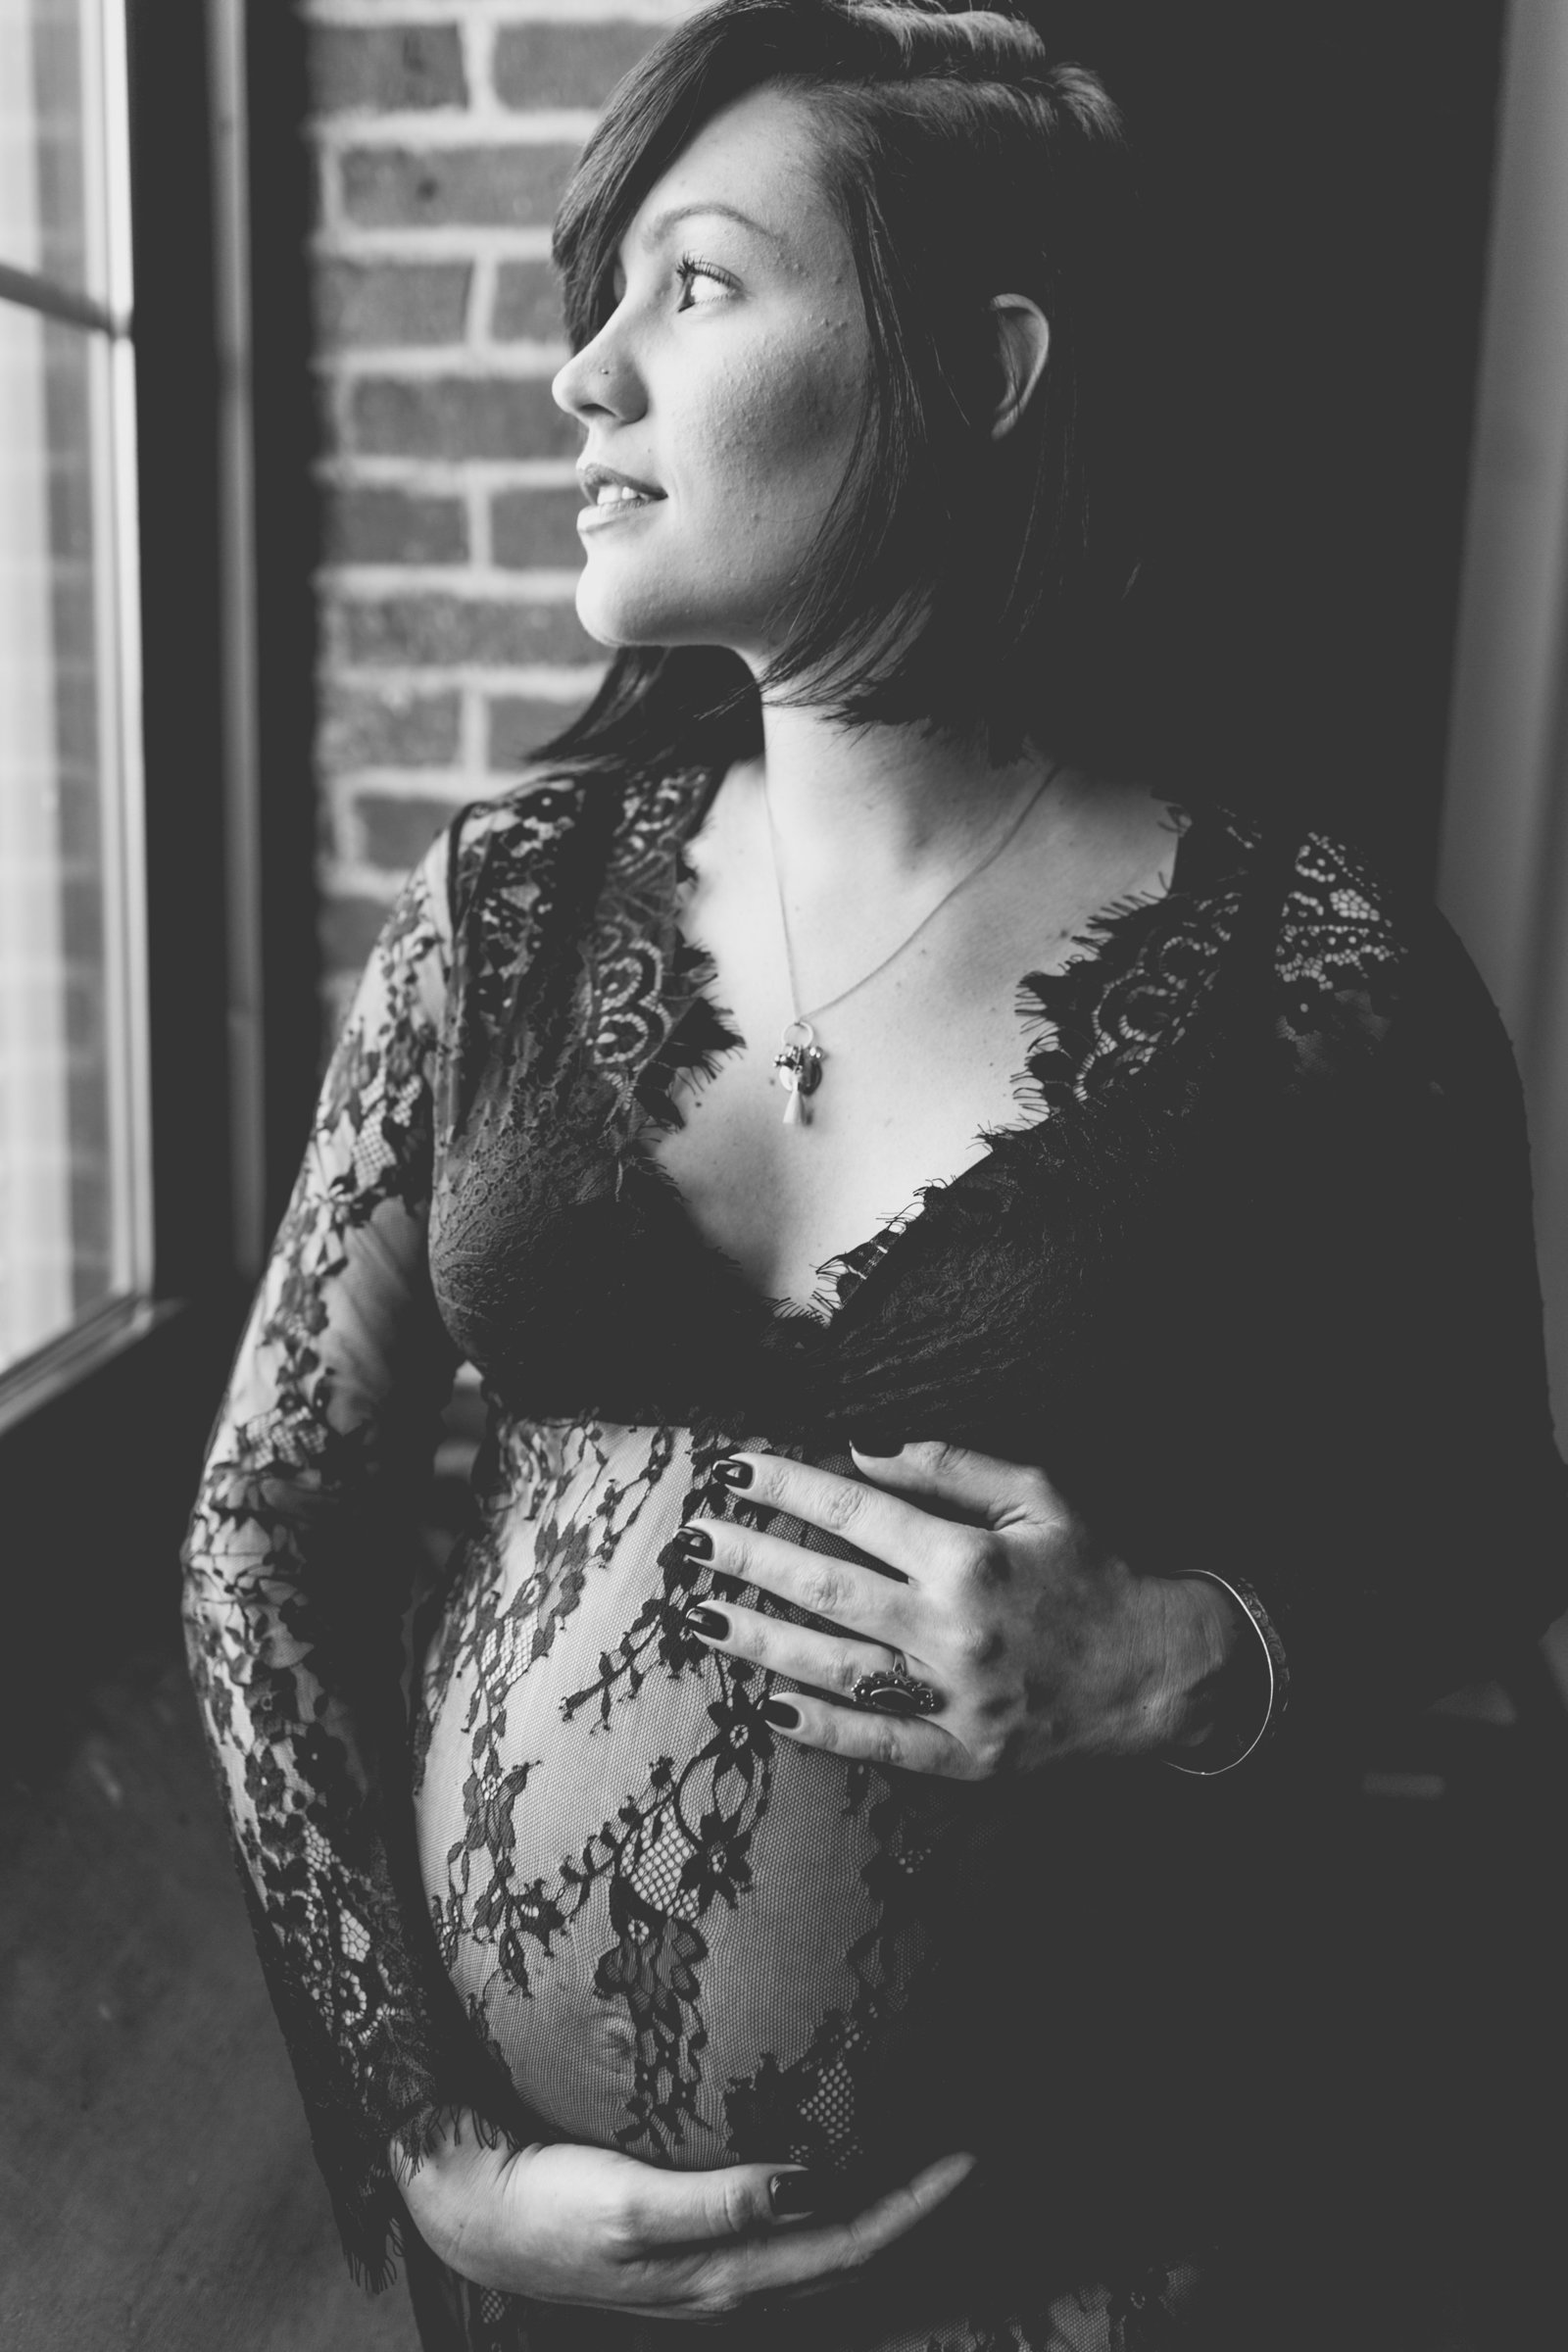 boston-maternity-session-alisha-norden-photography-43